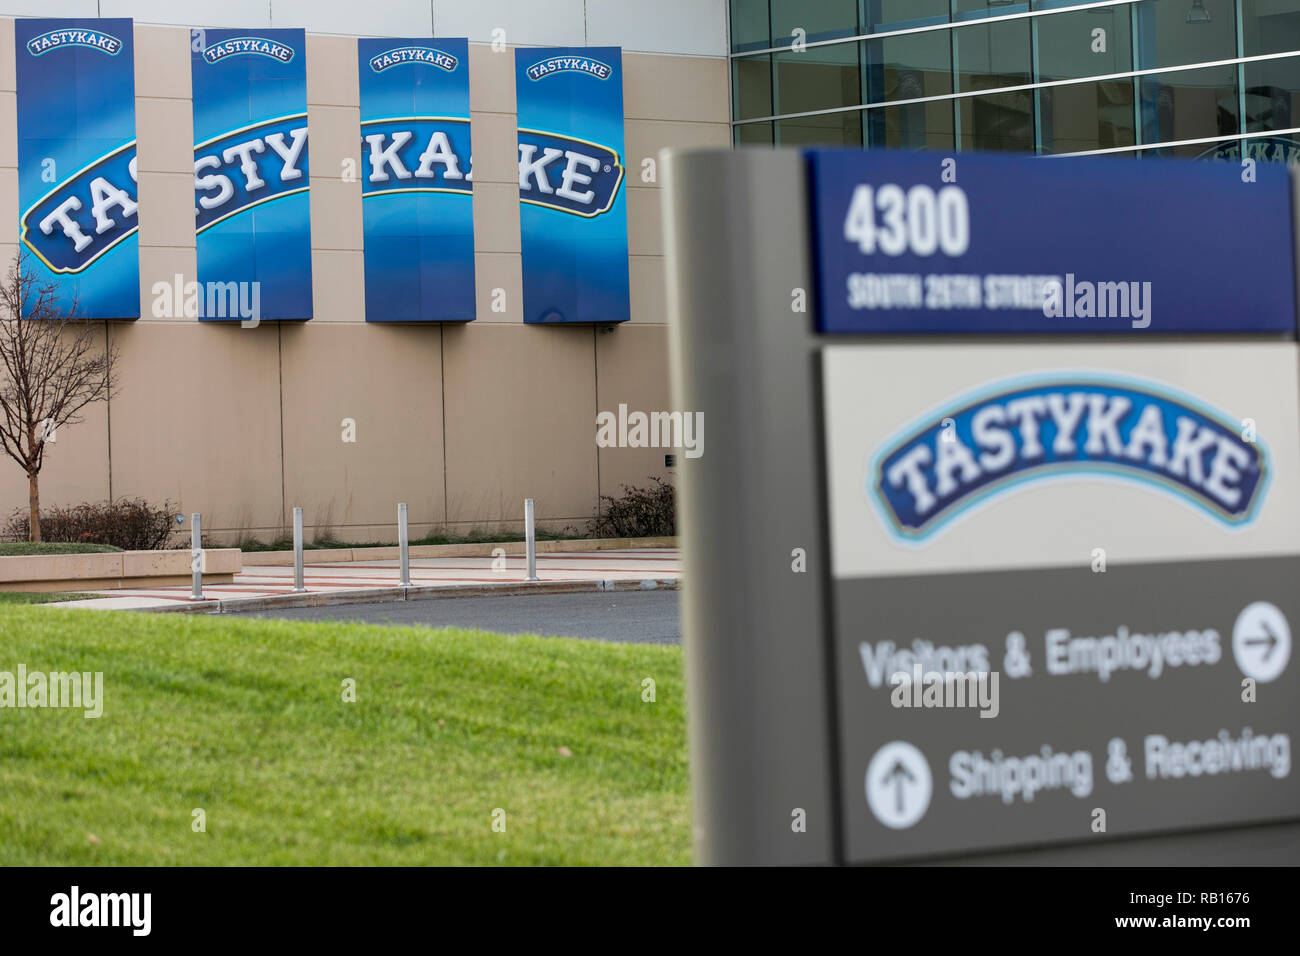 A logo sign outside of the headquarters of the Tasty Baking Company, maker of Tastykake products, in Philadelphia, Pennsylvania, on December 23, 2018. - Stock Image